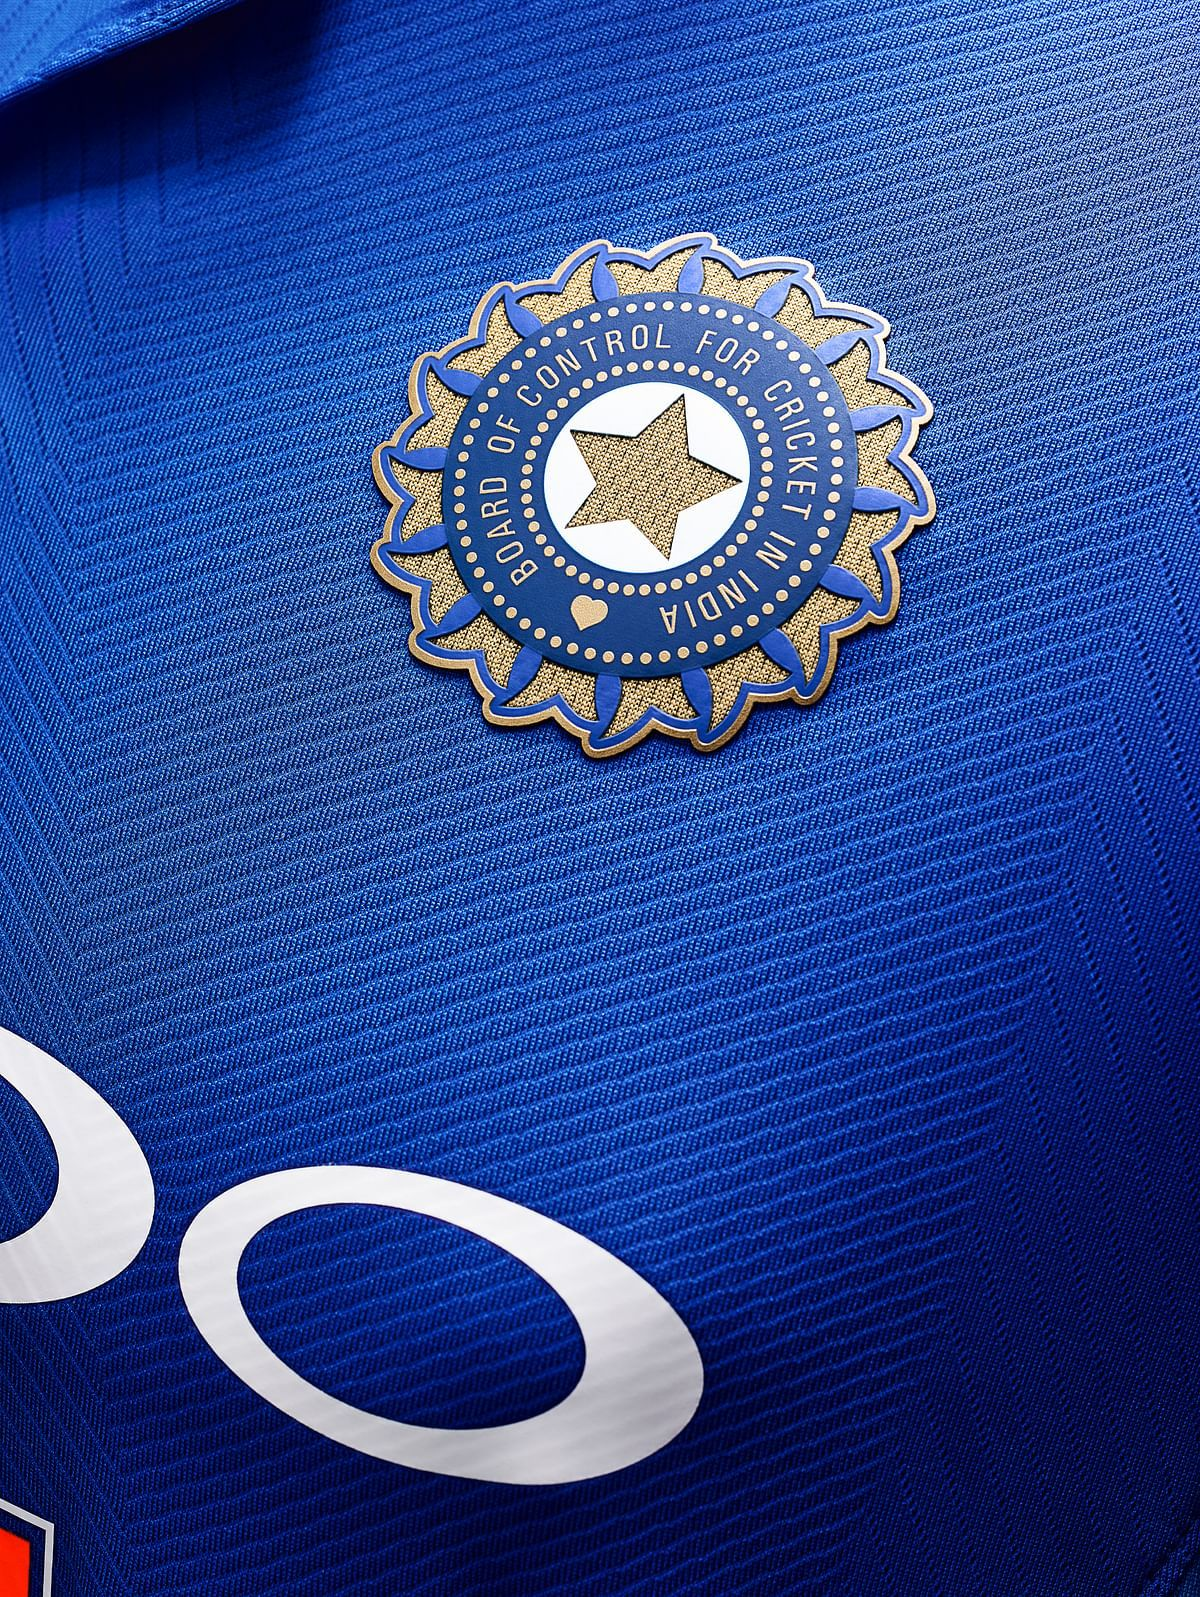 India World Cup 2019 New Jersey: Here's a Look at the Features of